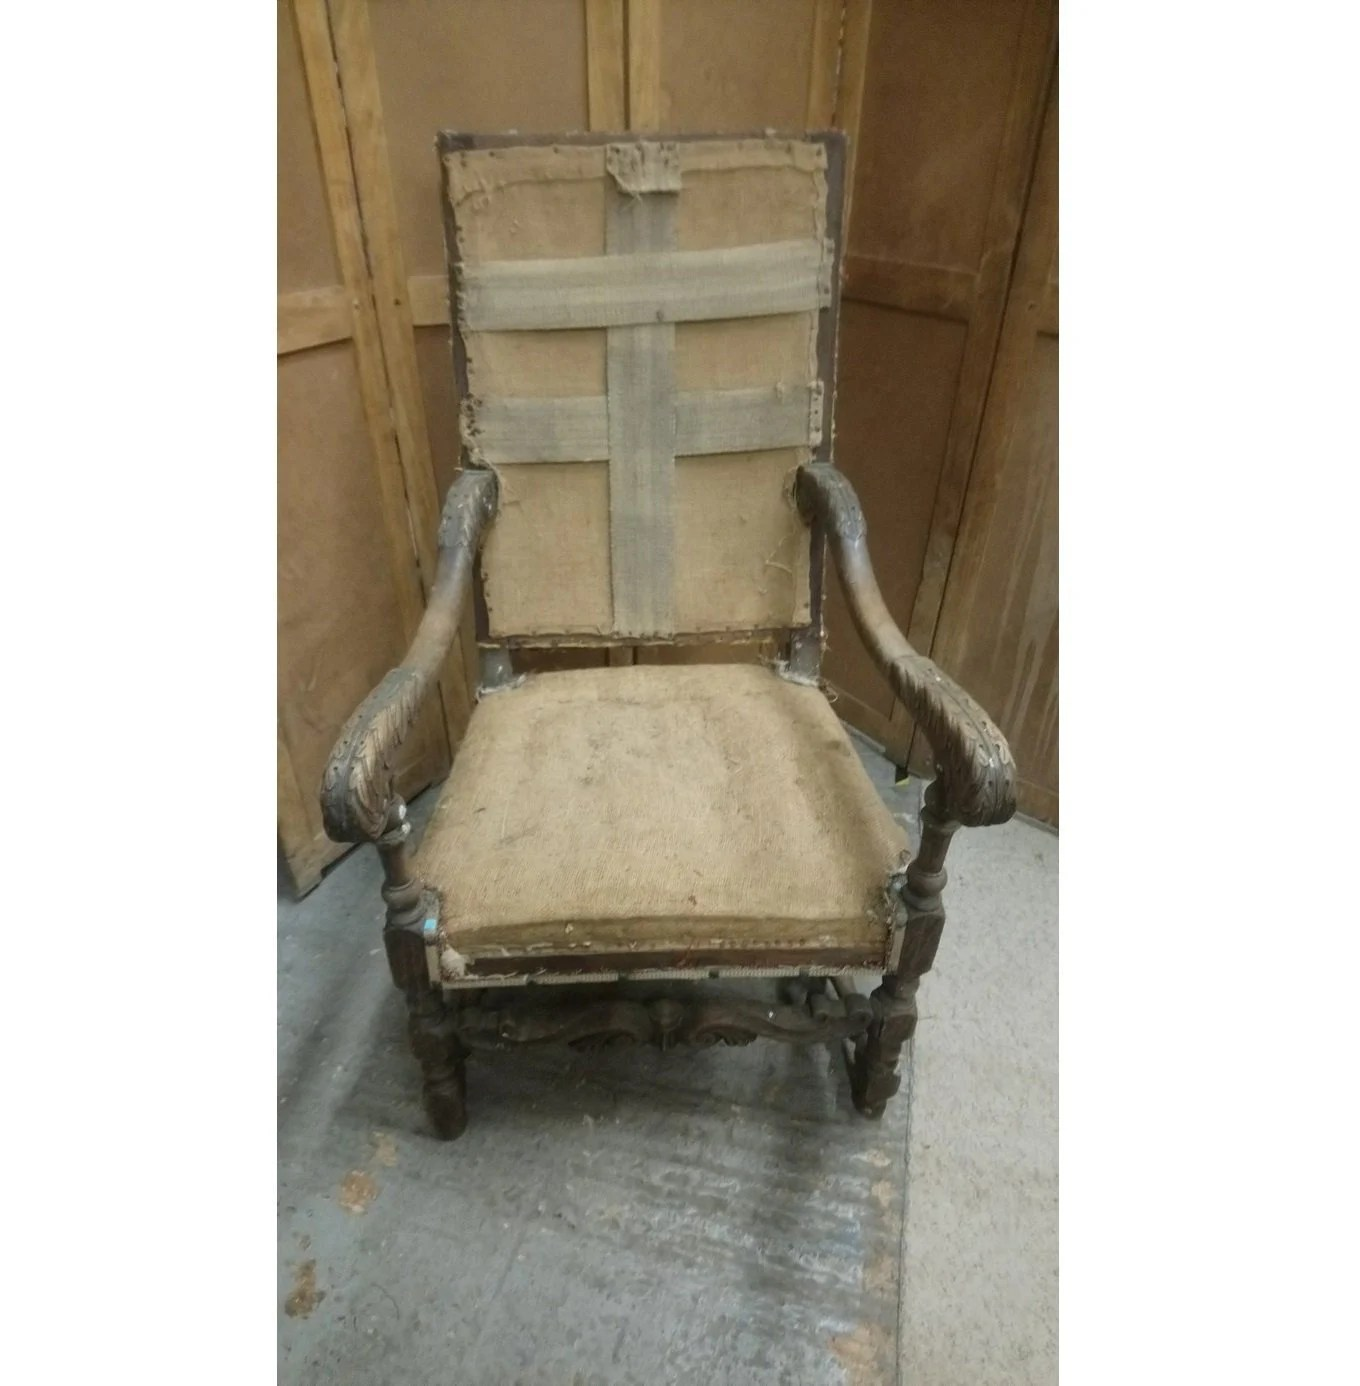 Fauteuil Shabby Chic The Shabby Chic Shac Herefordshire England 07873224479